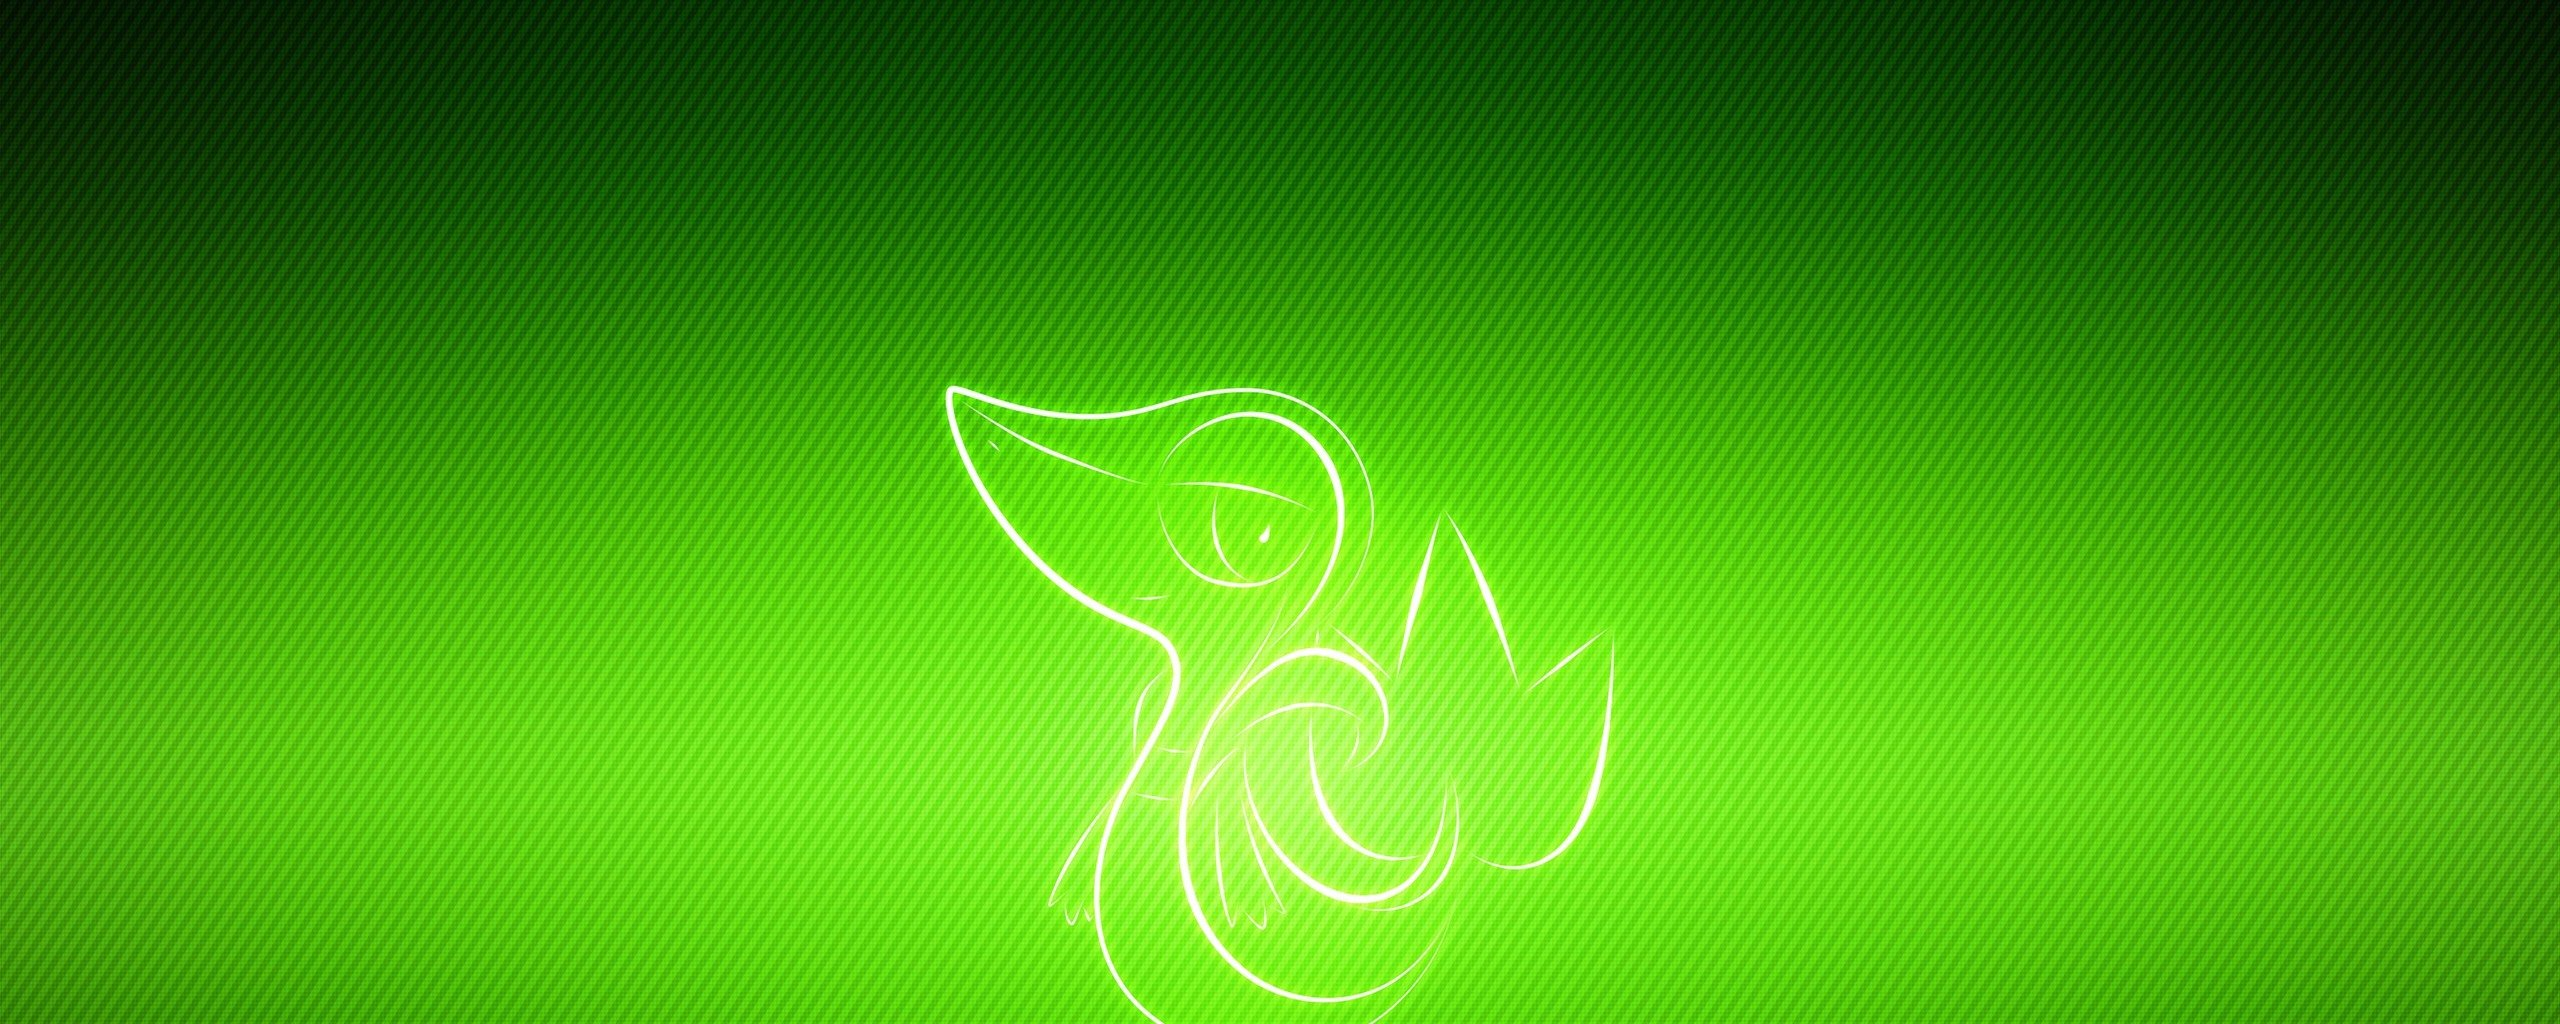 Pokemon Poultry Snivy Wallpaper Background Dual Monitor Resolution 2560x1024